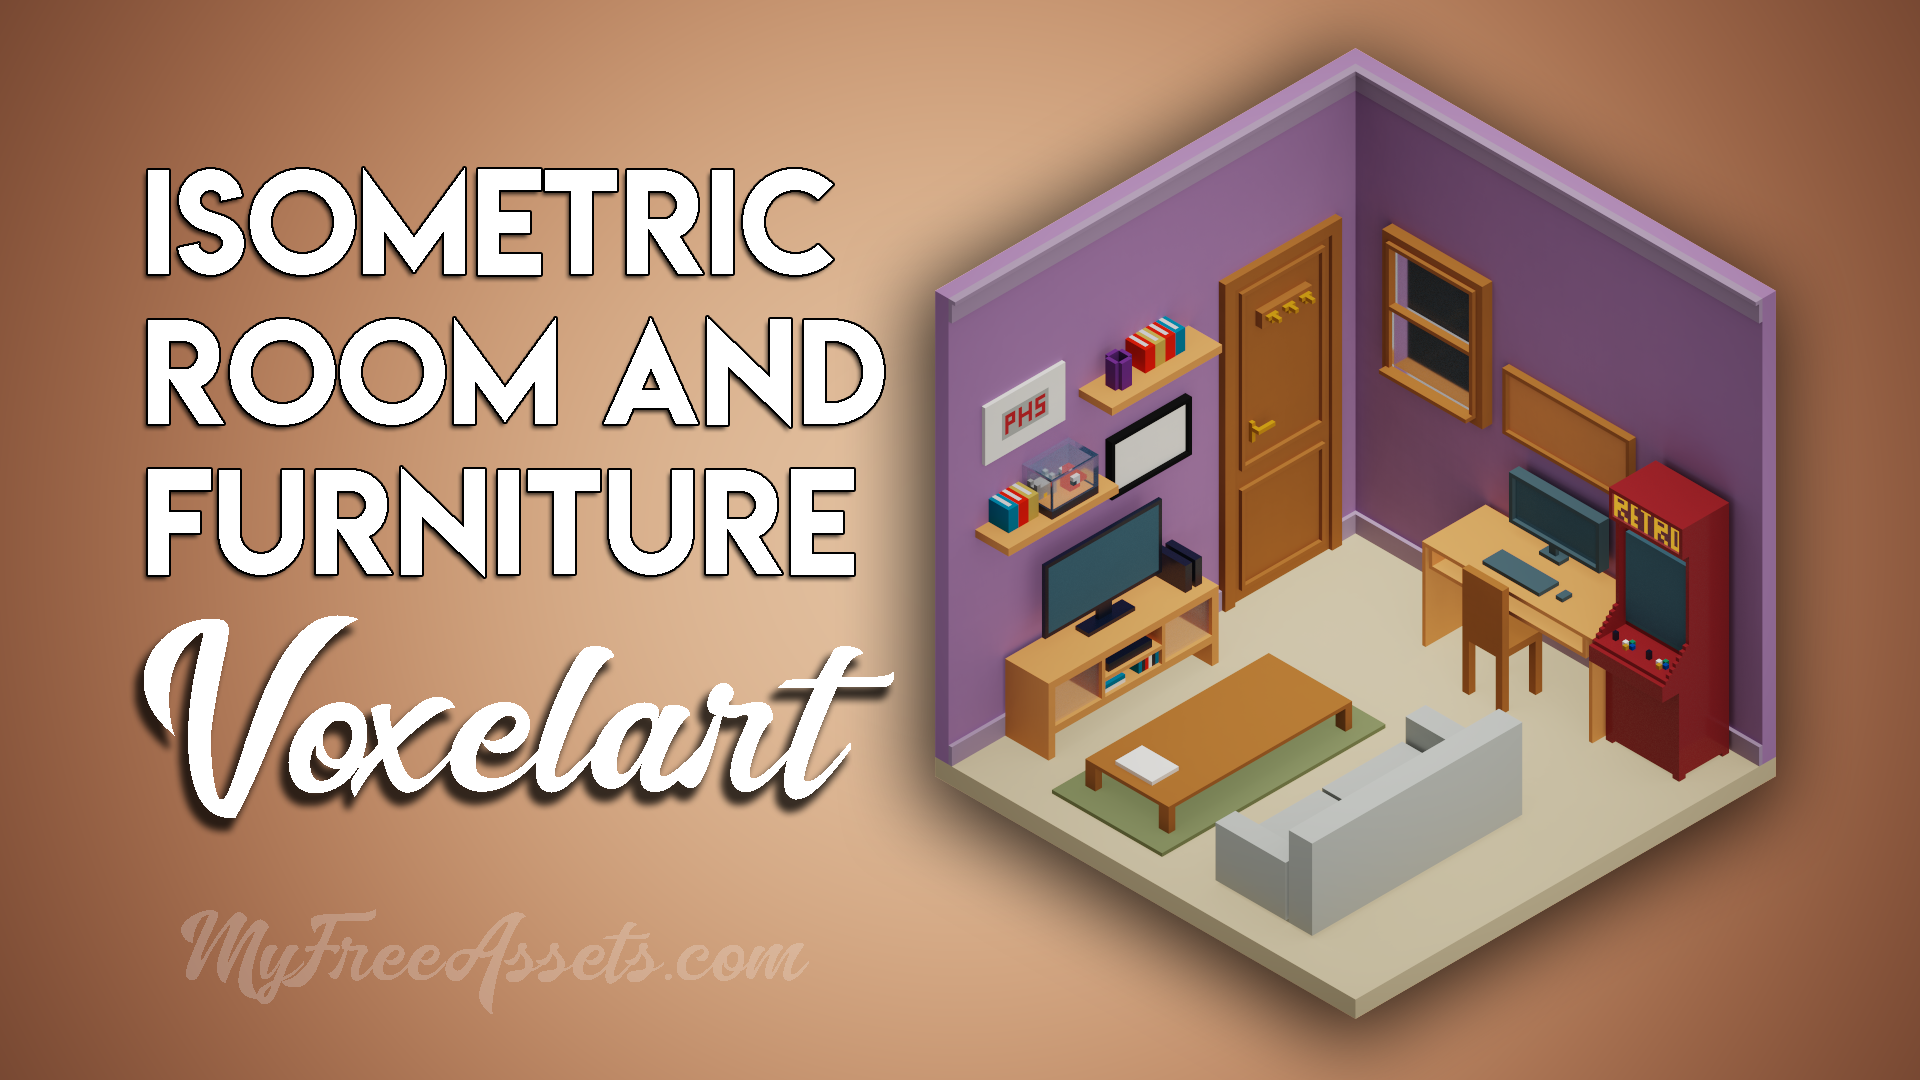 Isometric voxel room